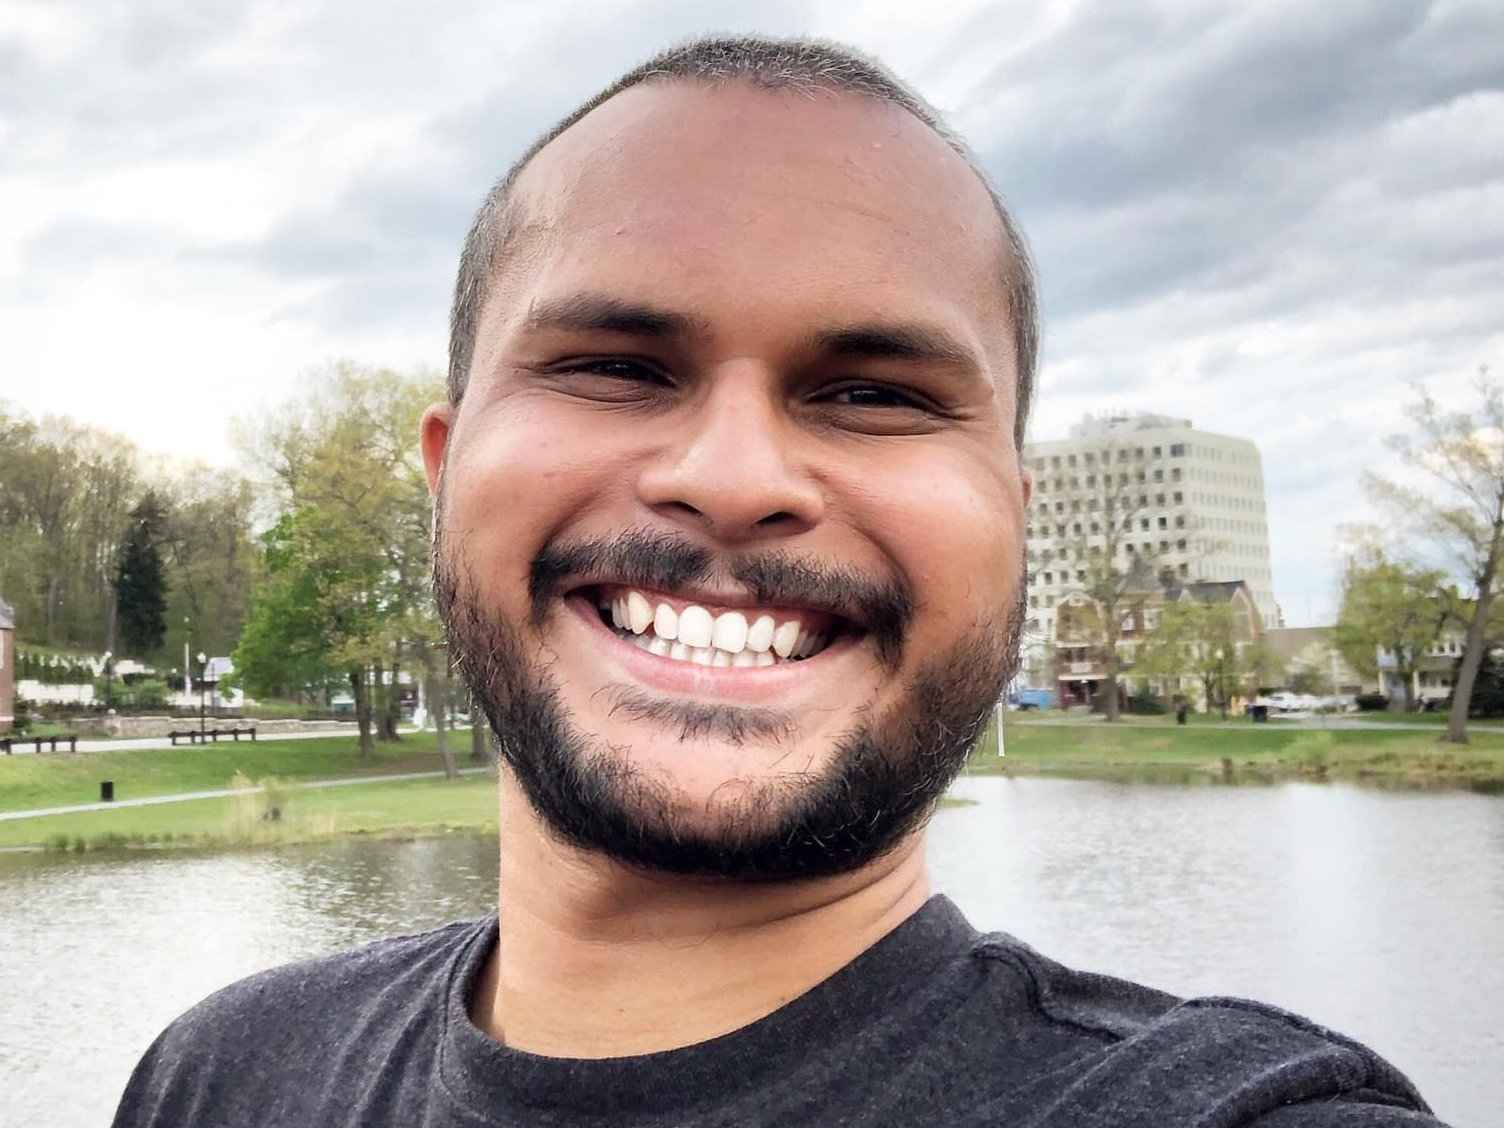 Muhammad is an openly gay guy from Pakistan who now lives in America